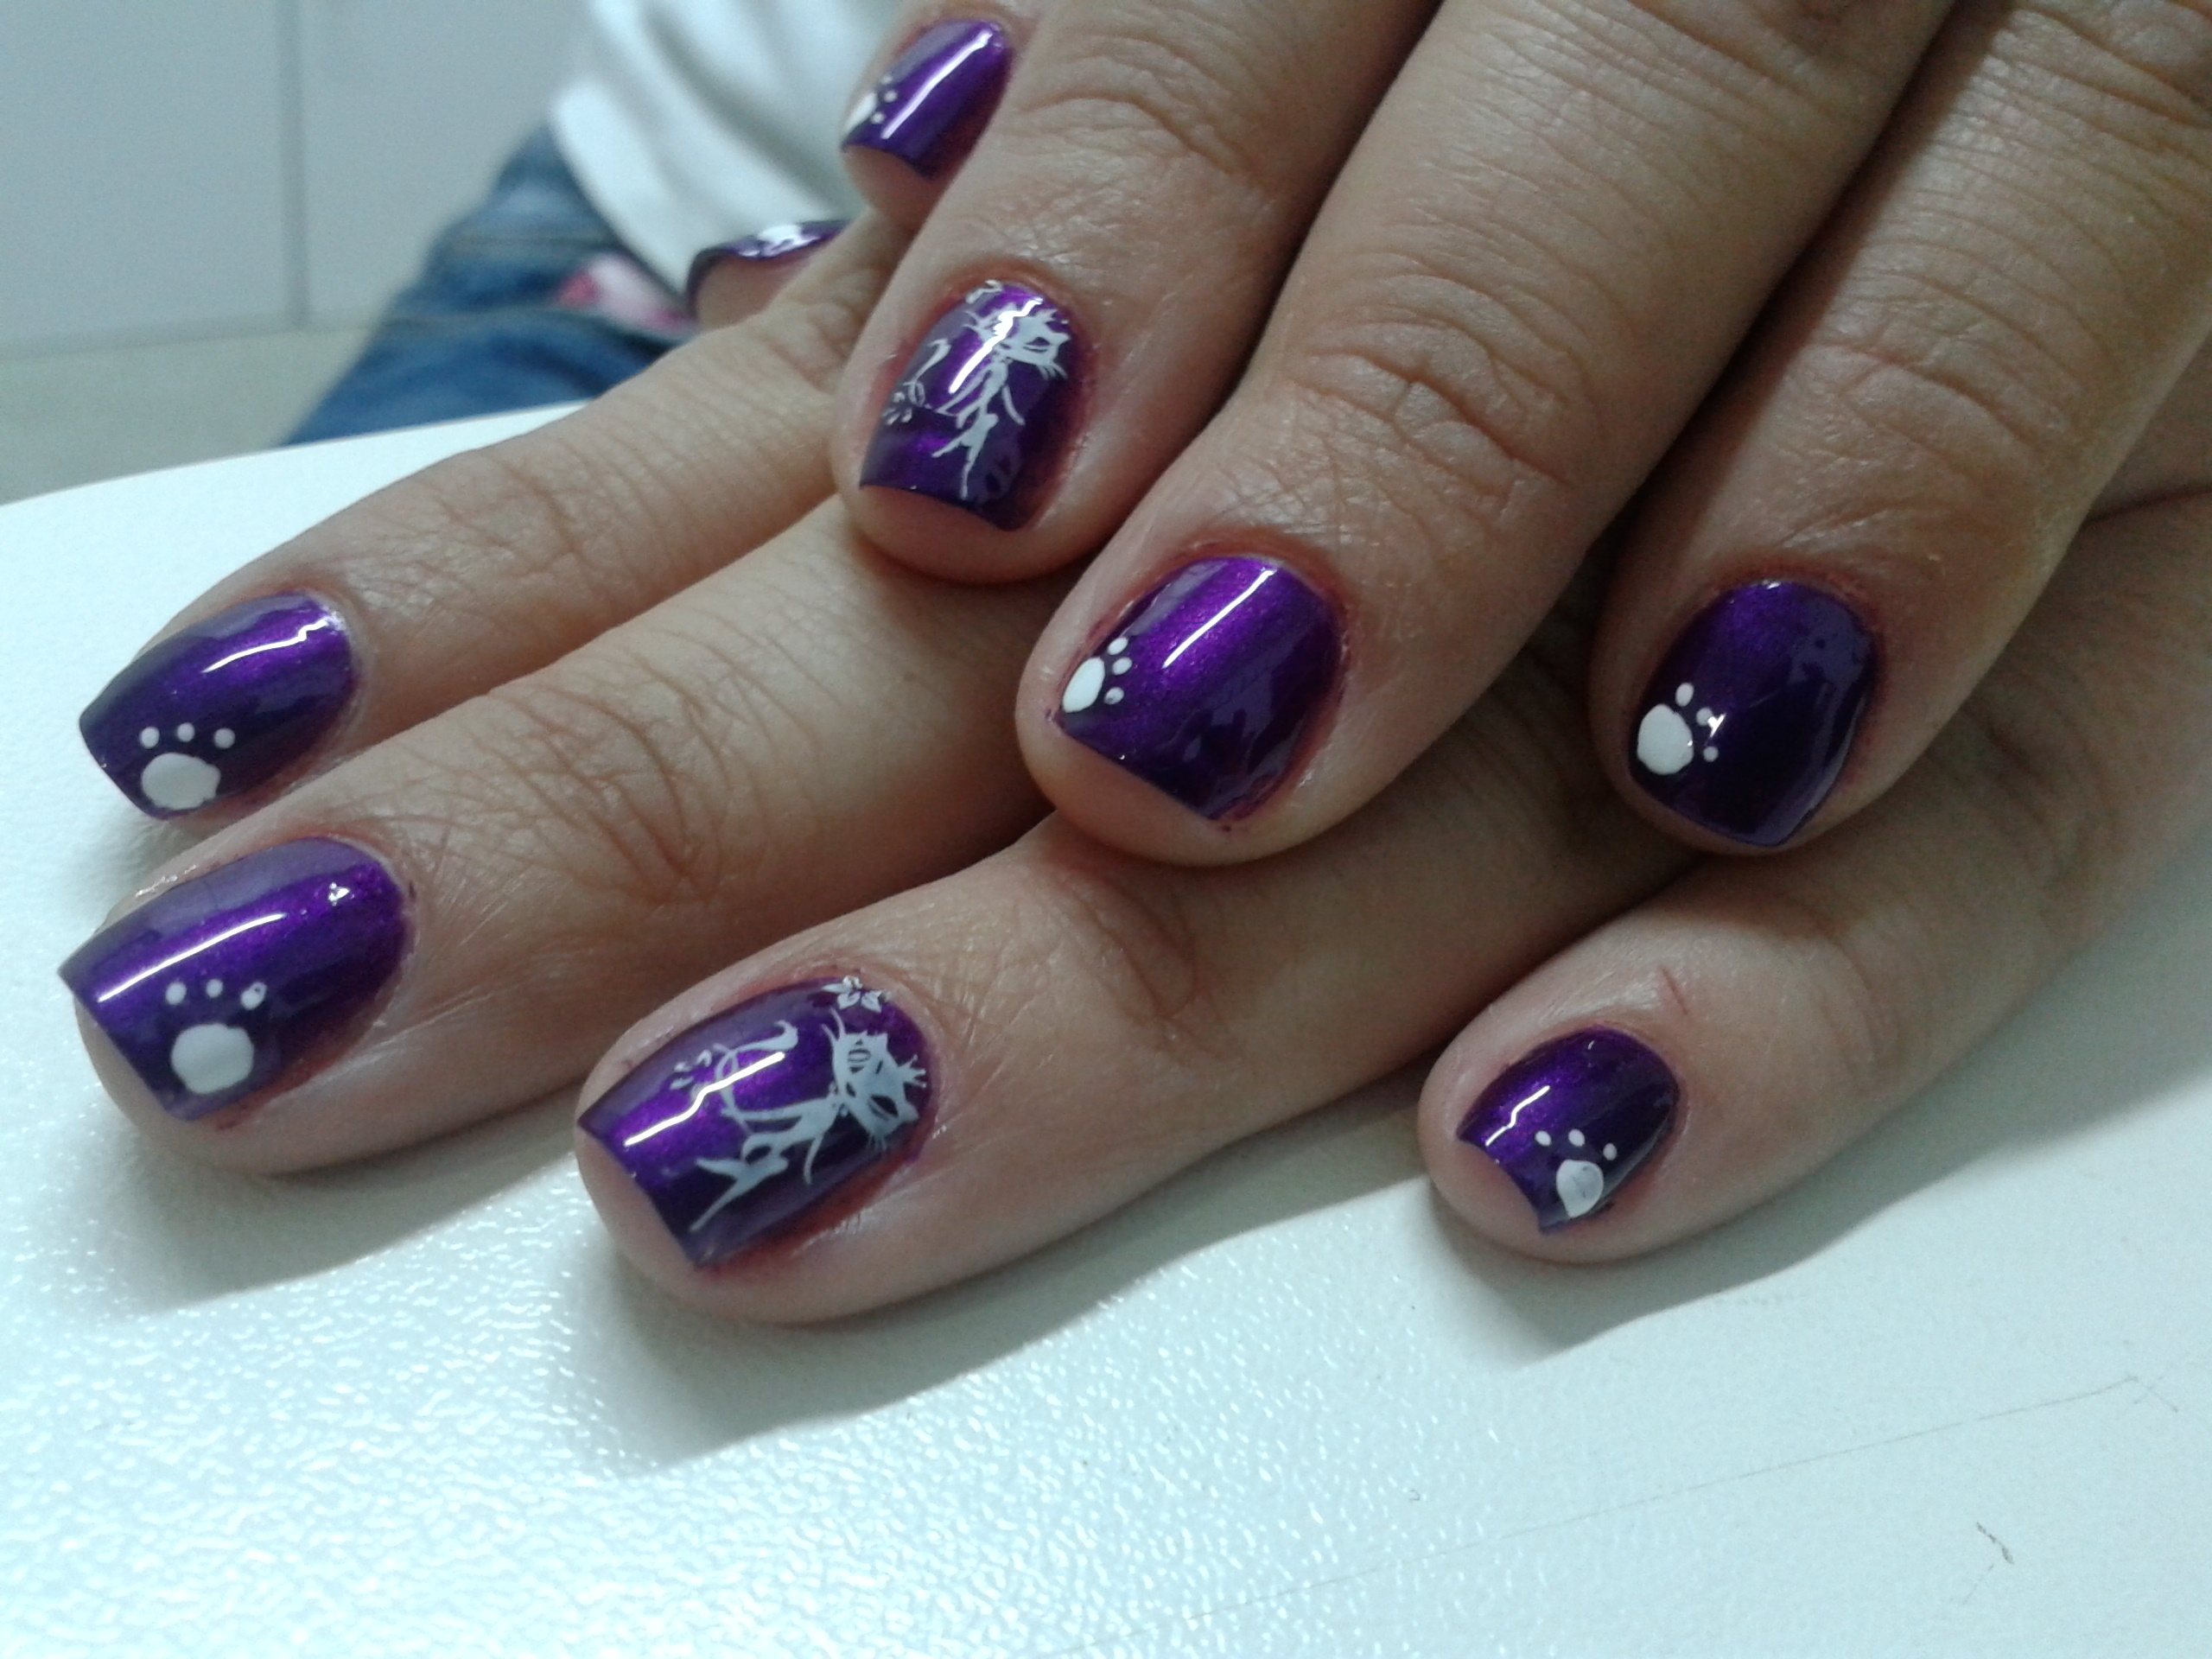 Uñas De Gel Decoradas Con Flores Manicura Casera En Color Orchid Miriam Dream Nails